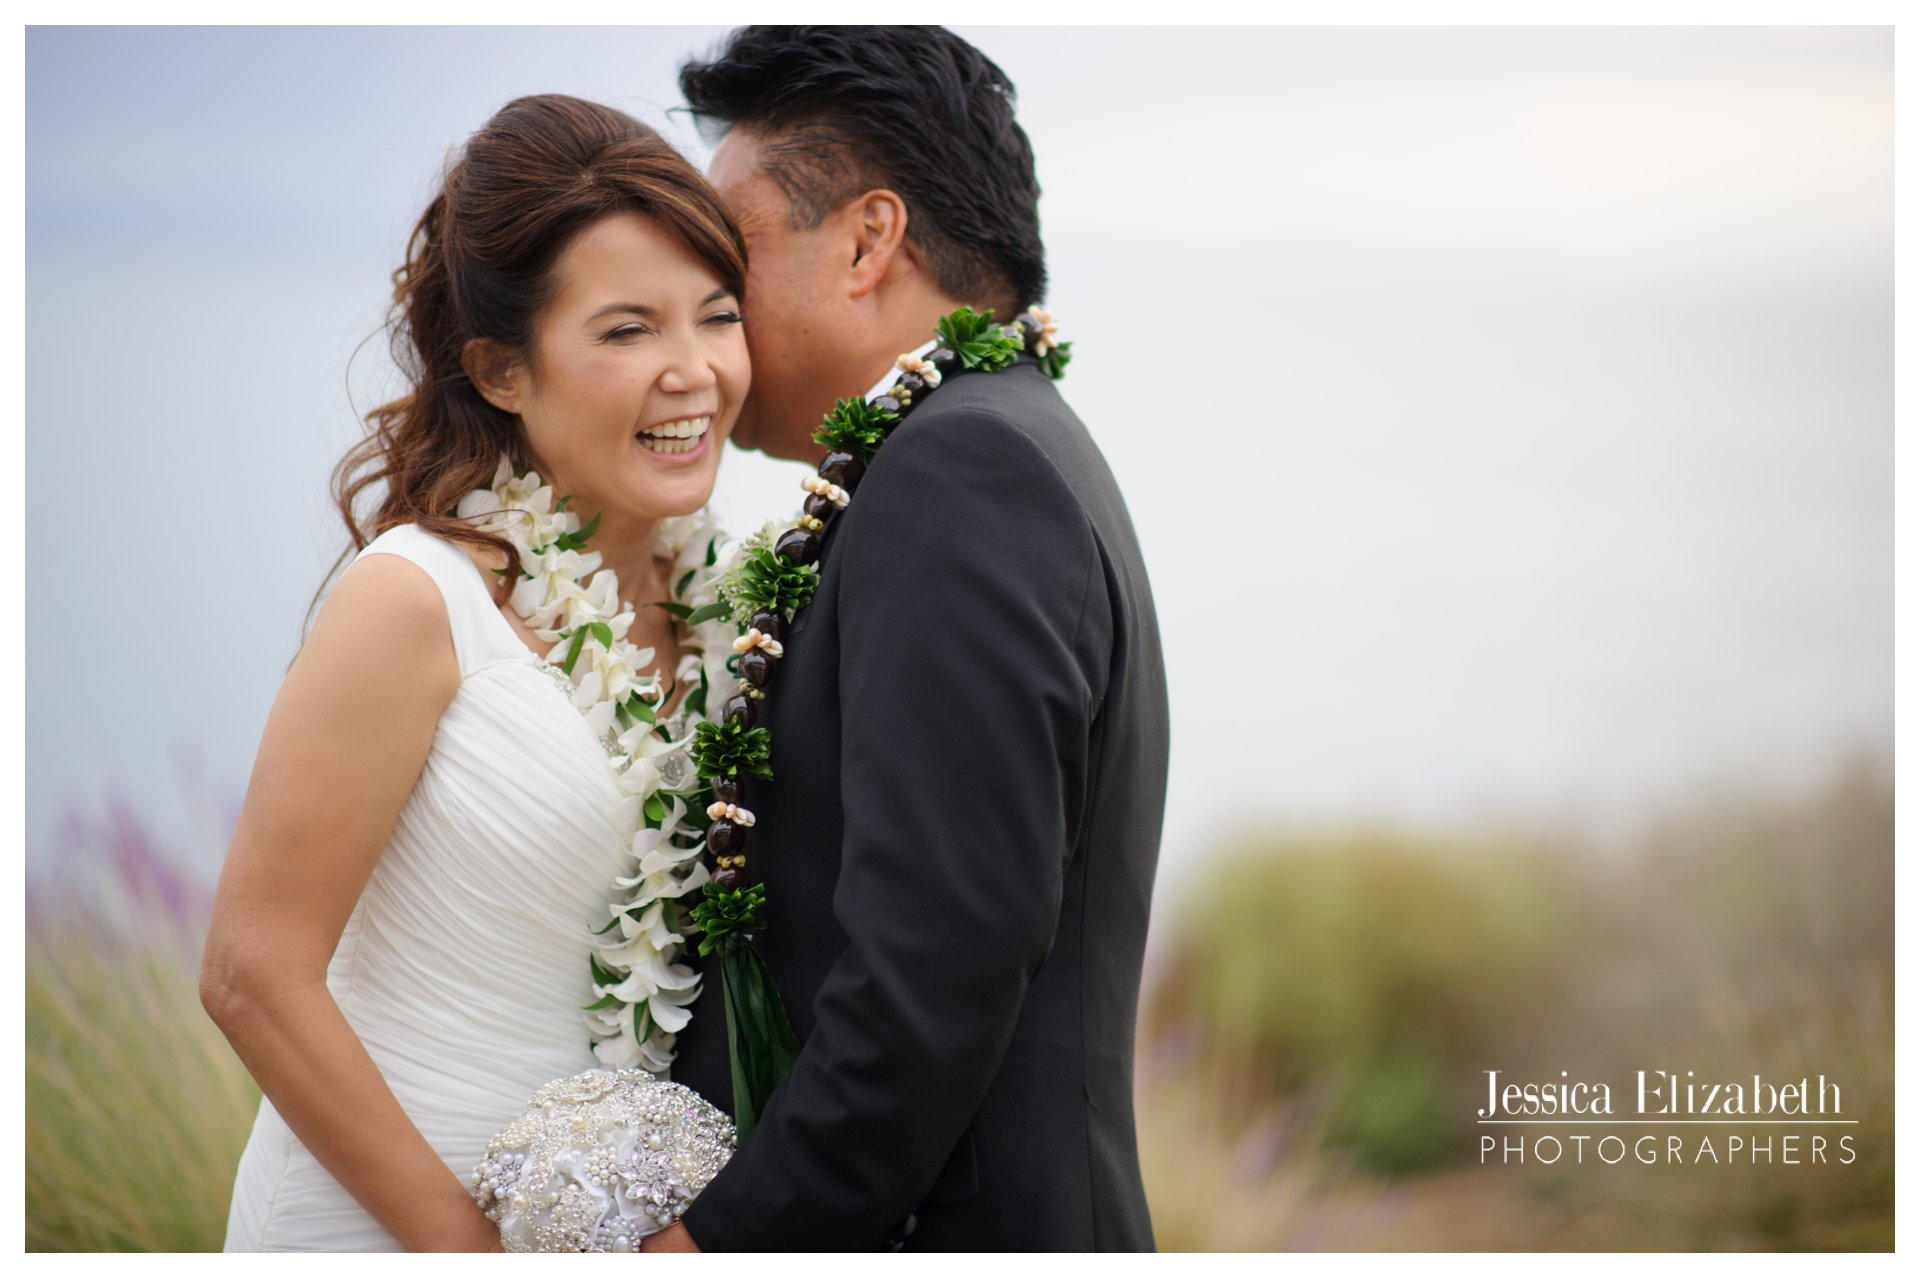 32-Terranea-Palos-Verdes-Wedding-Photography-by-Jessica-Elizabeth-w.jpg